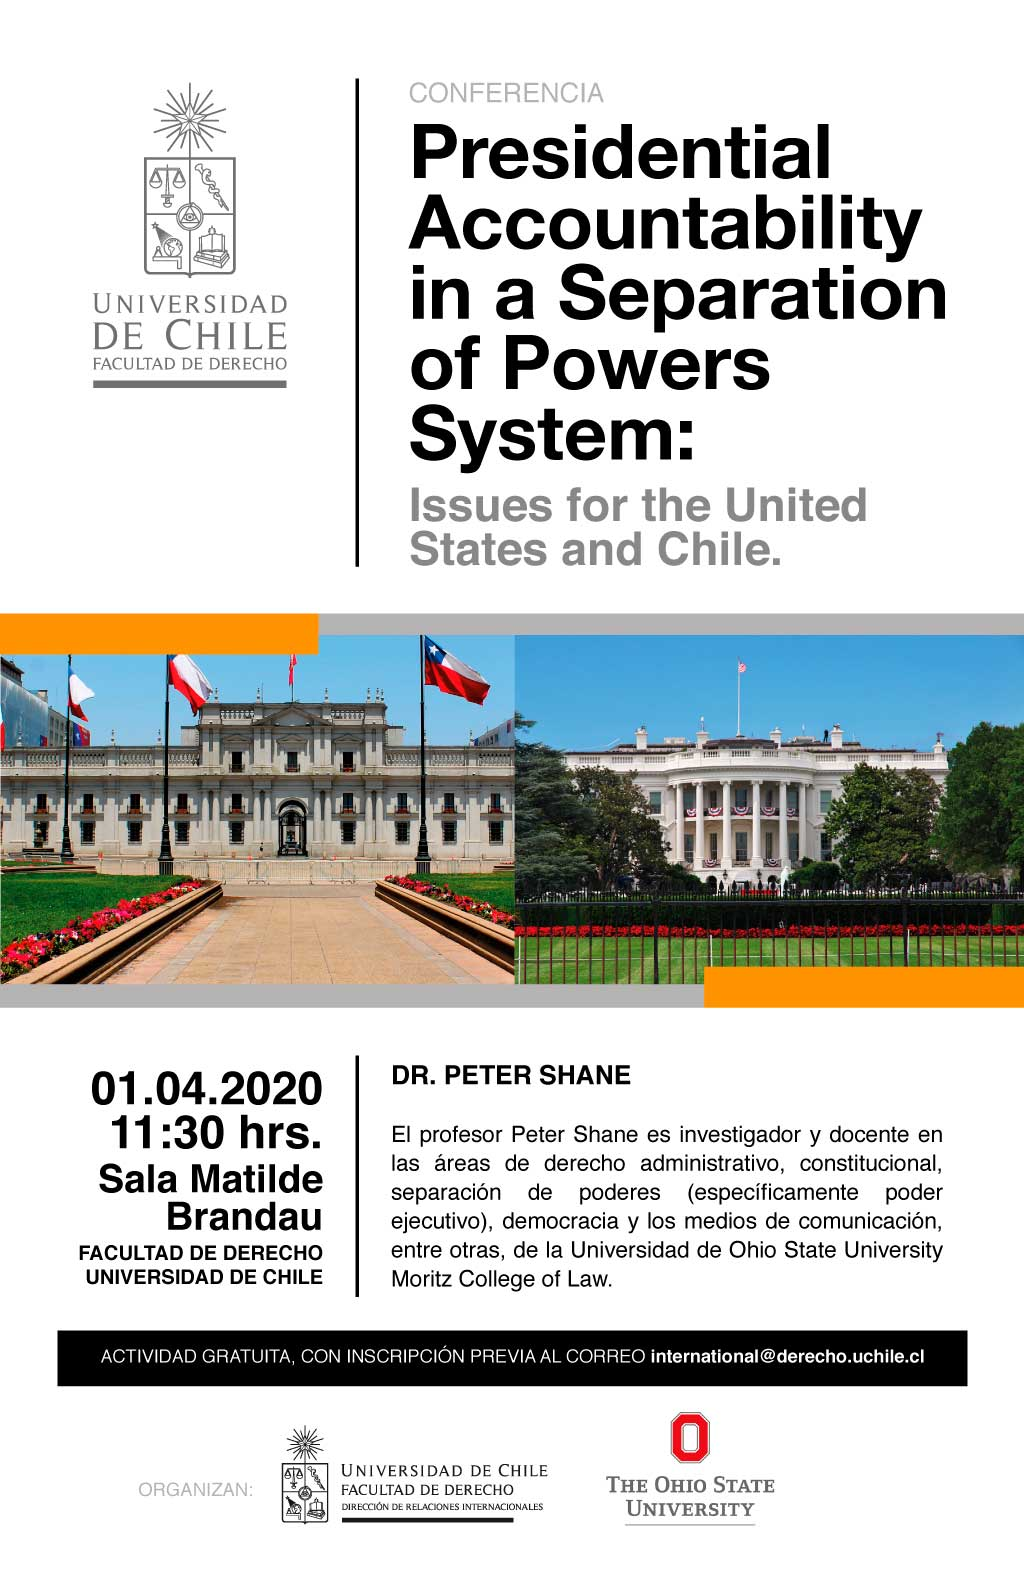 """Conferencia """"Presidential Accountability in a Separation of Powers System: Issues for the United States and Chile"""""""